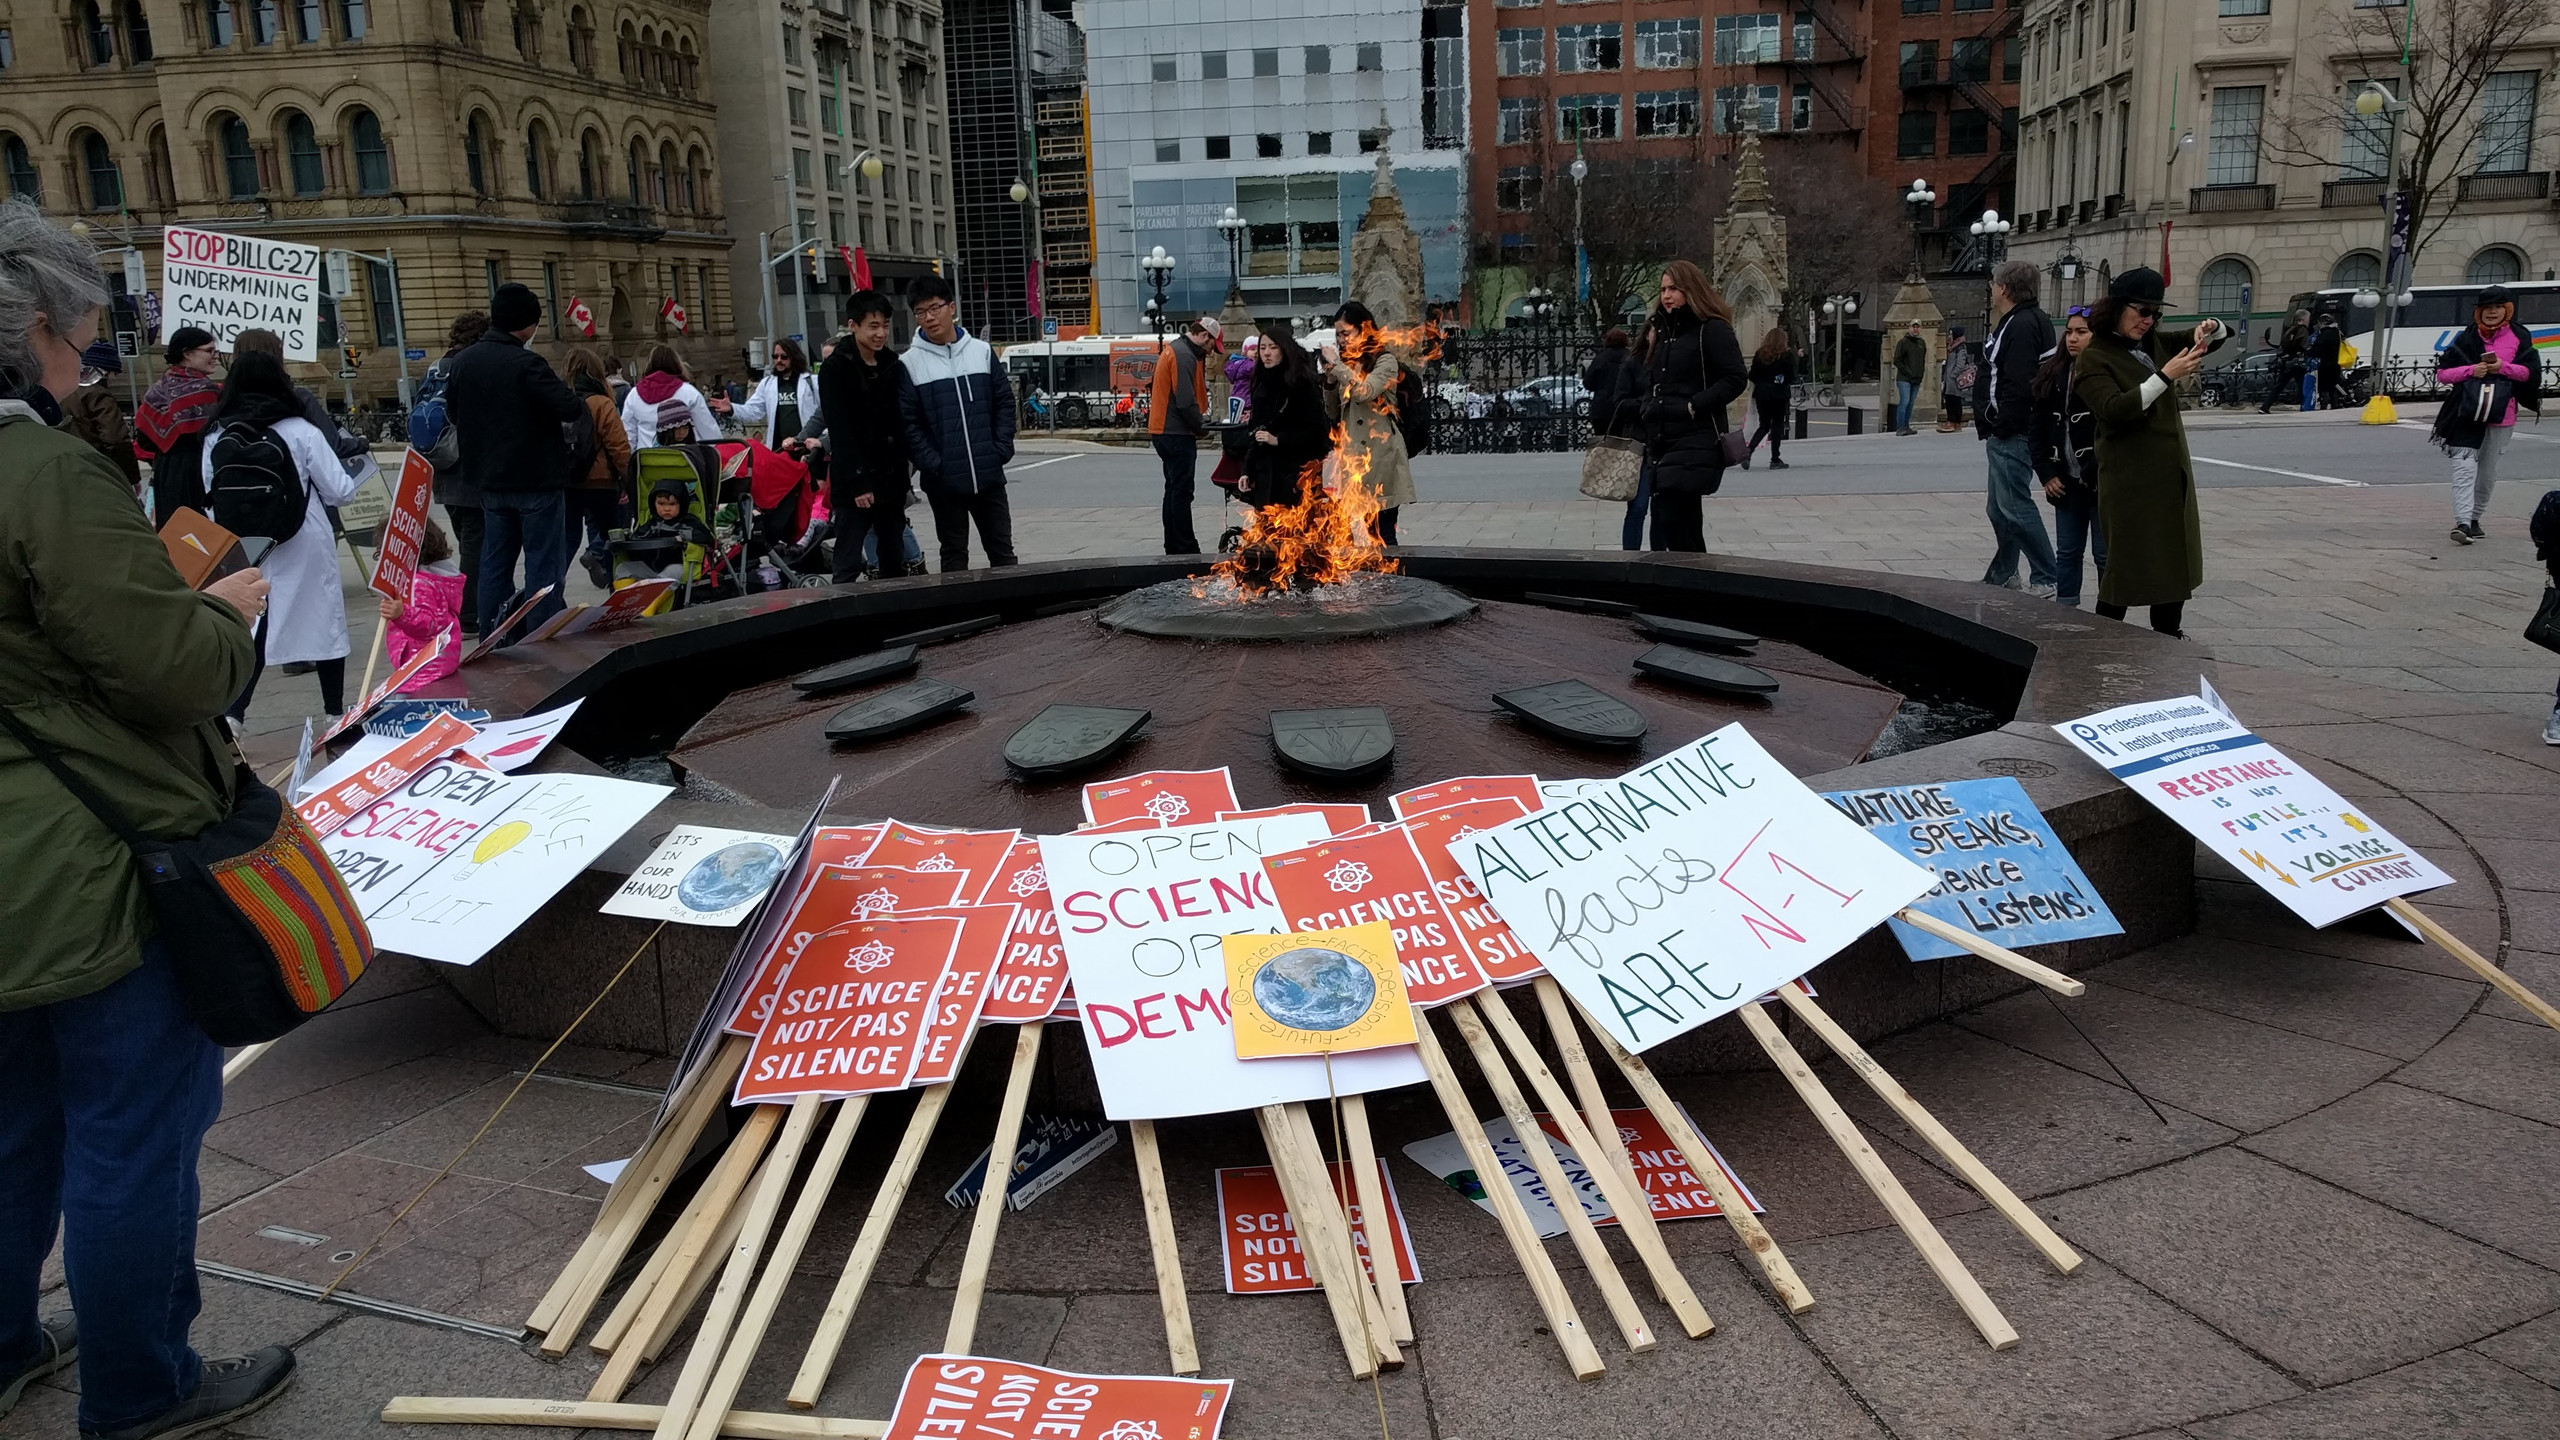 The Centennial Flame collected signs